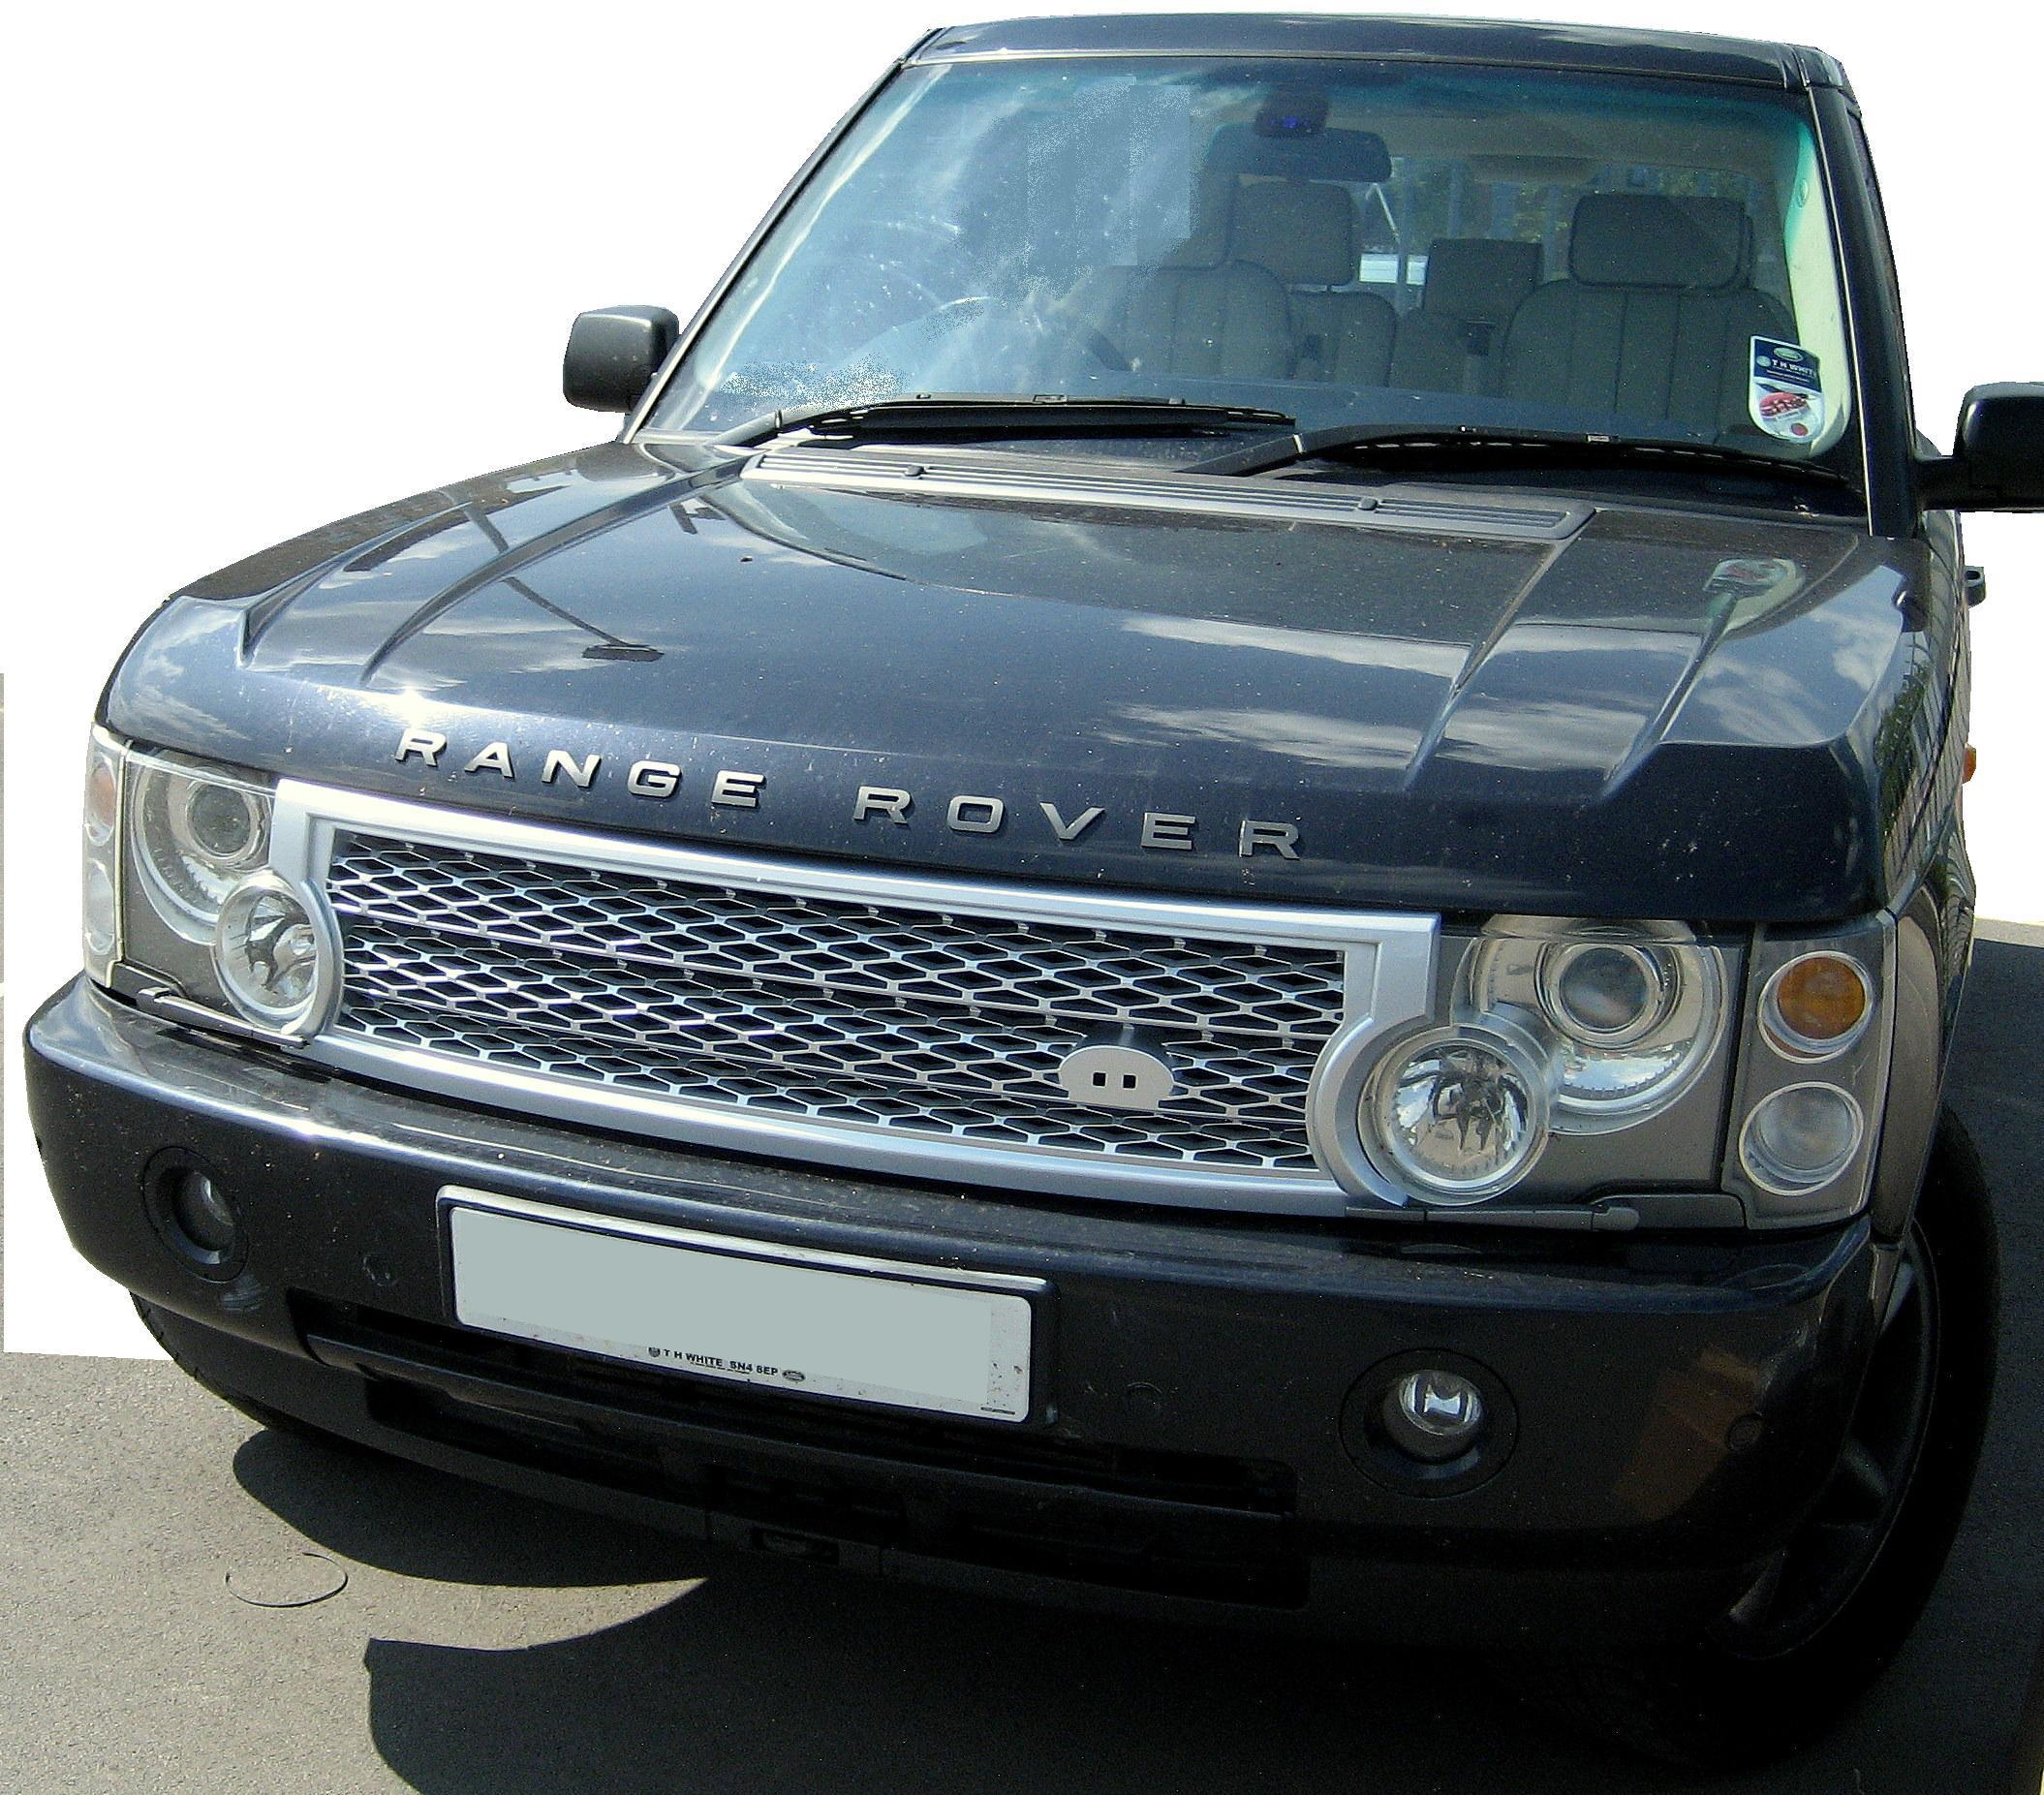 silver SUPERCHARGED grille upgrade kit for Range Rover L322 2002